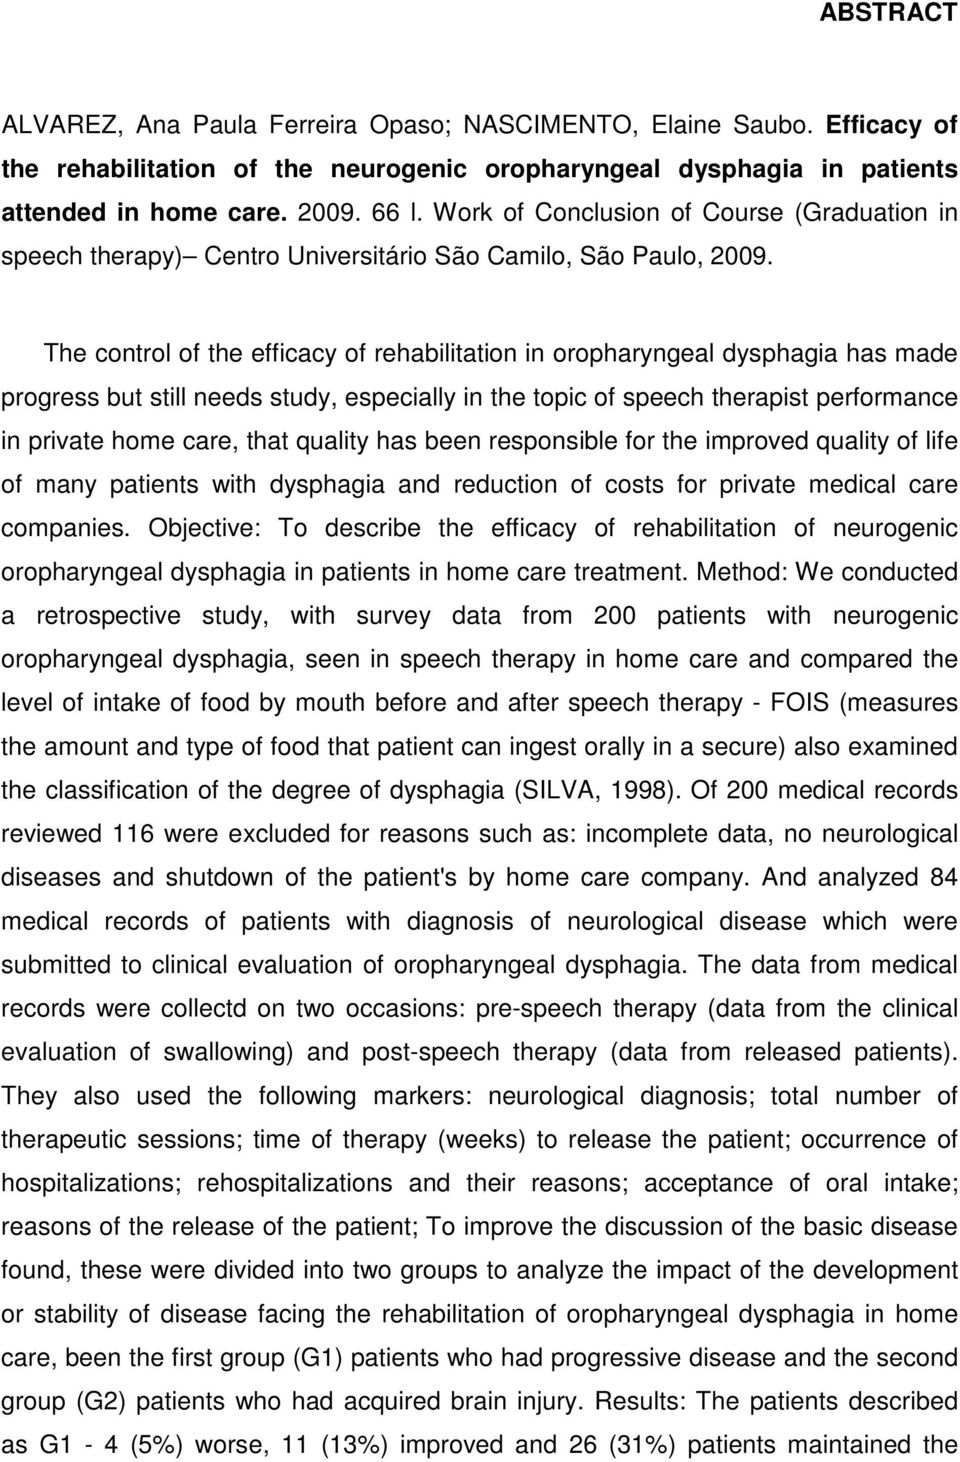 The control of the efficacy of rehabilitation in oropharyngeal dysphagia has made progress but still needs study, especially in the topic of speech therapist performance in private home care, that